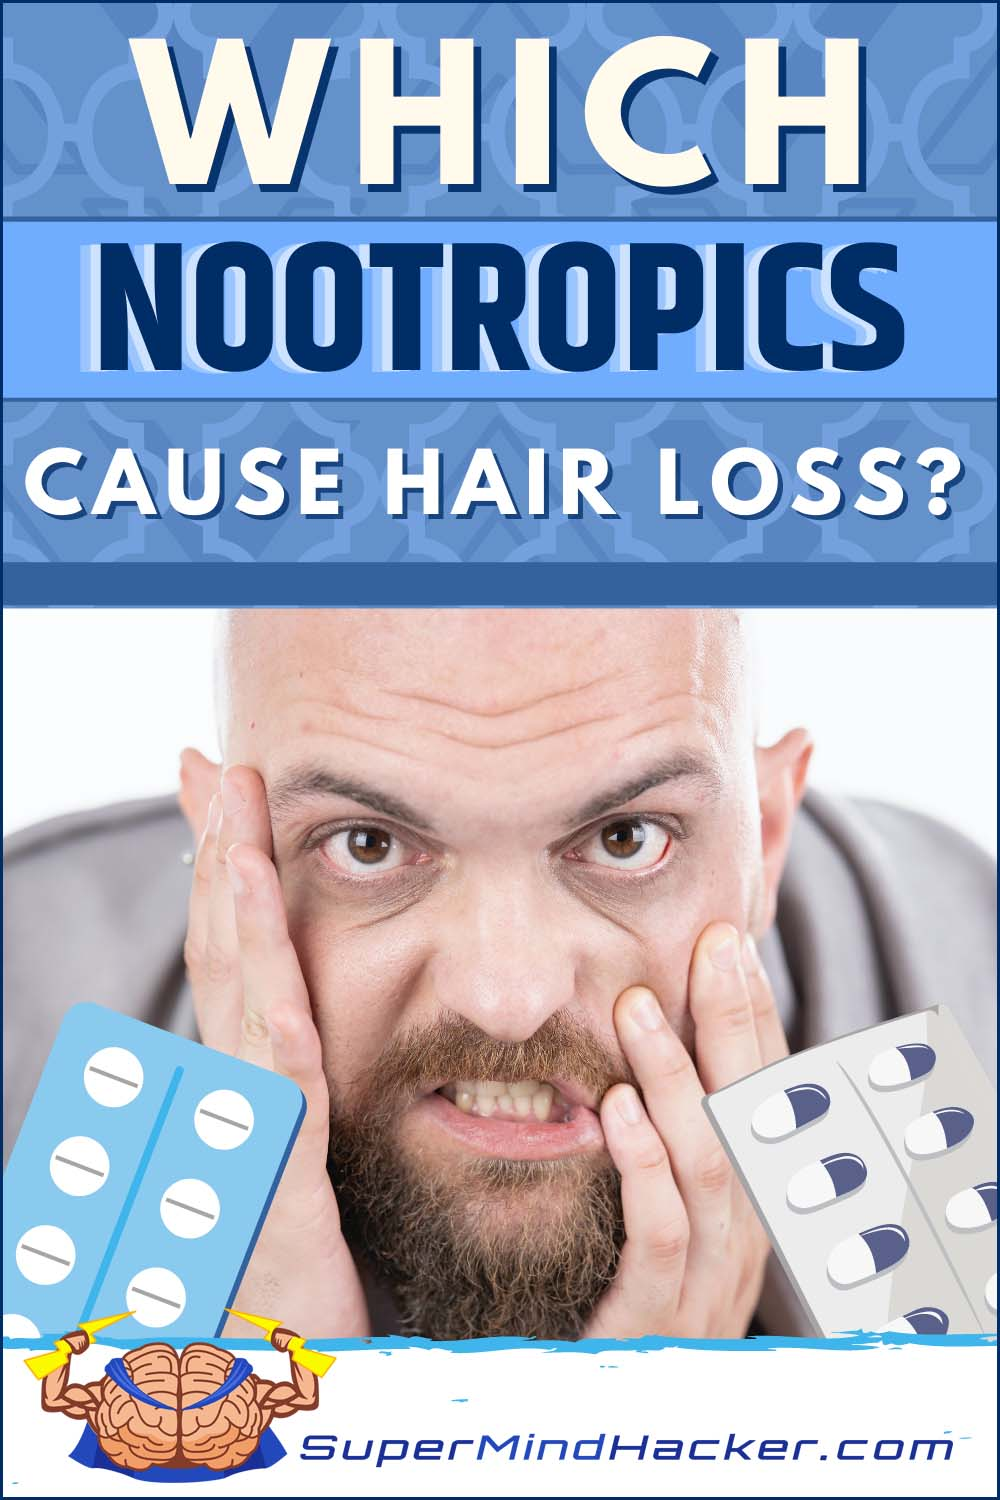 Which Nootropics Cause Hair Loss?